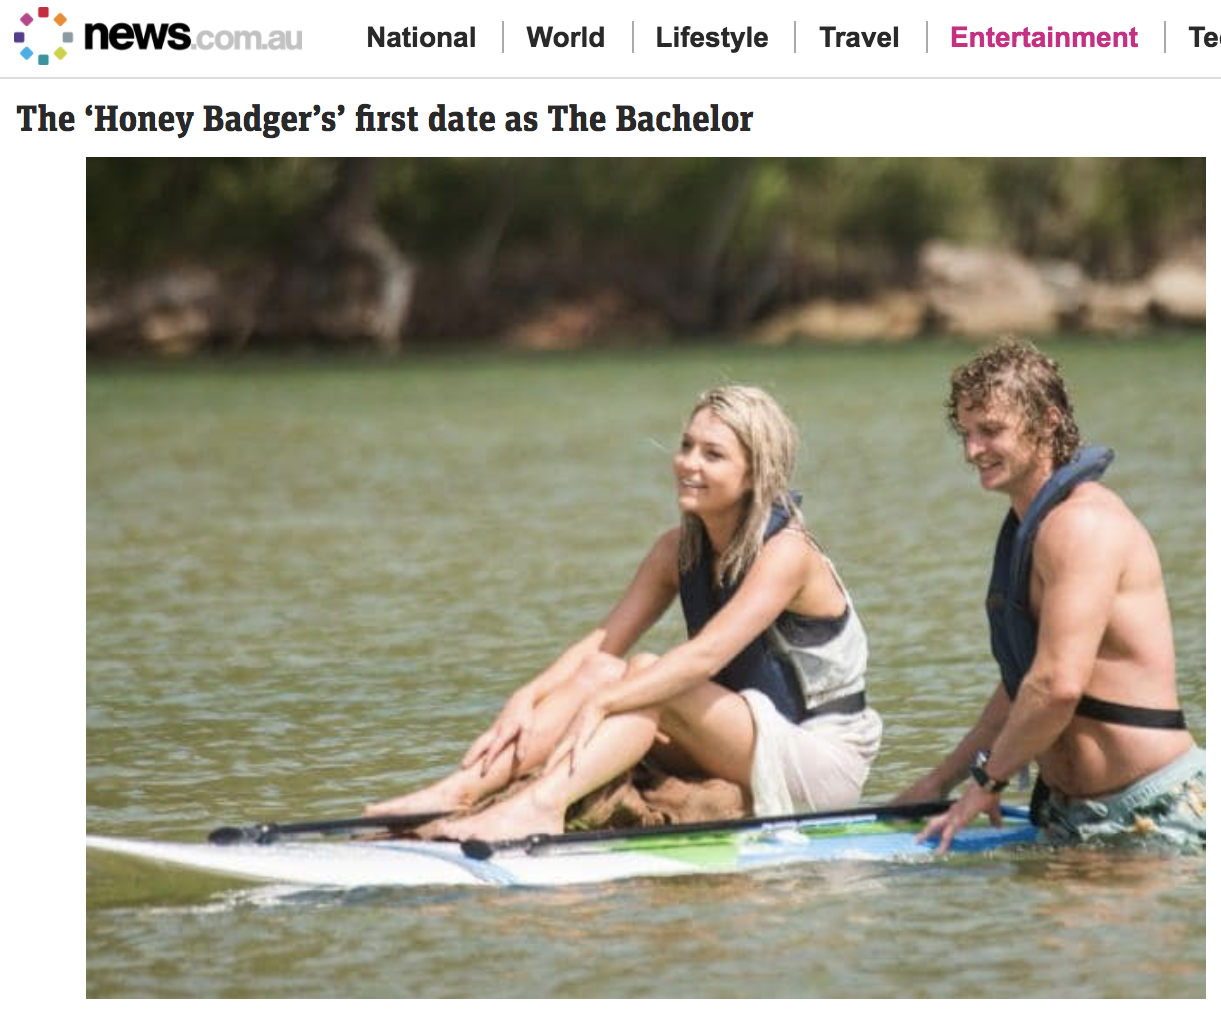 The Bachelor paparrazi photo (news.com.au) [1]